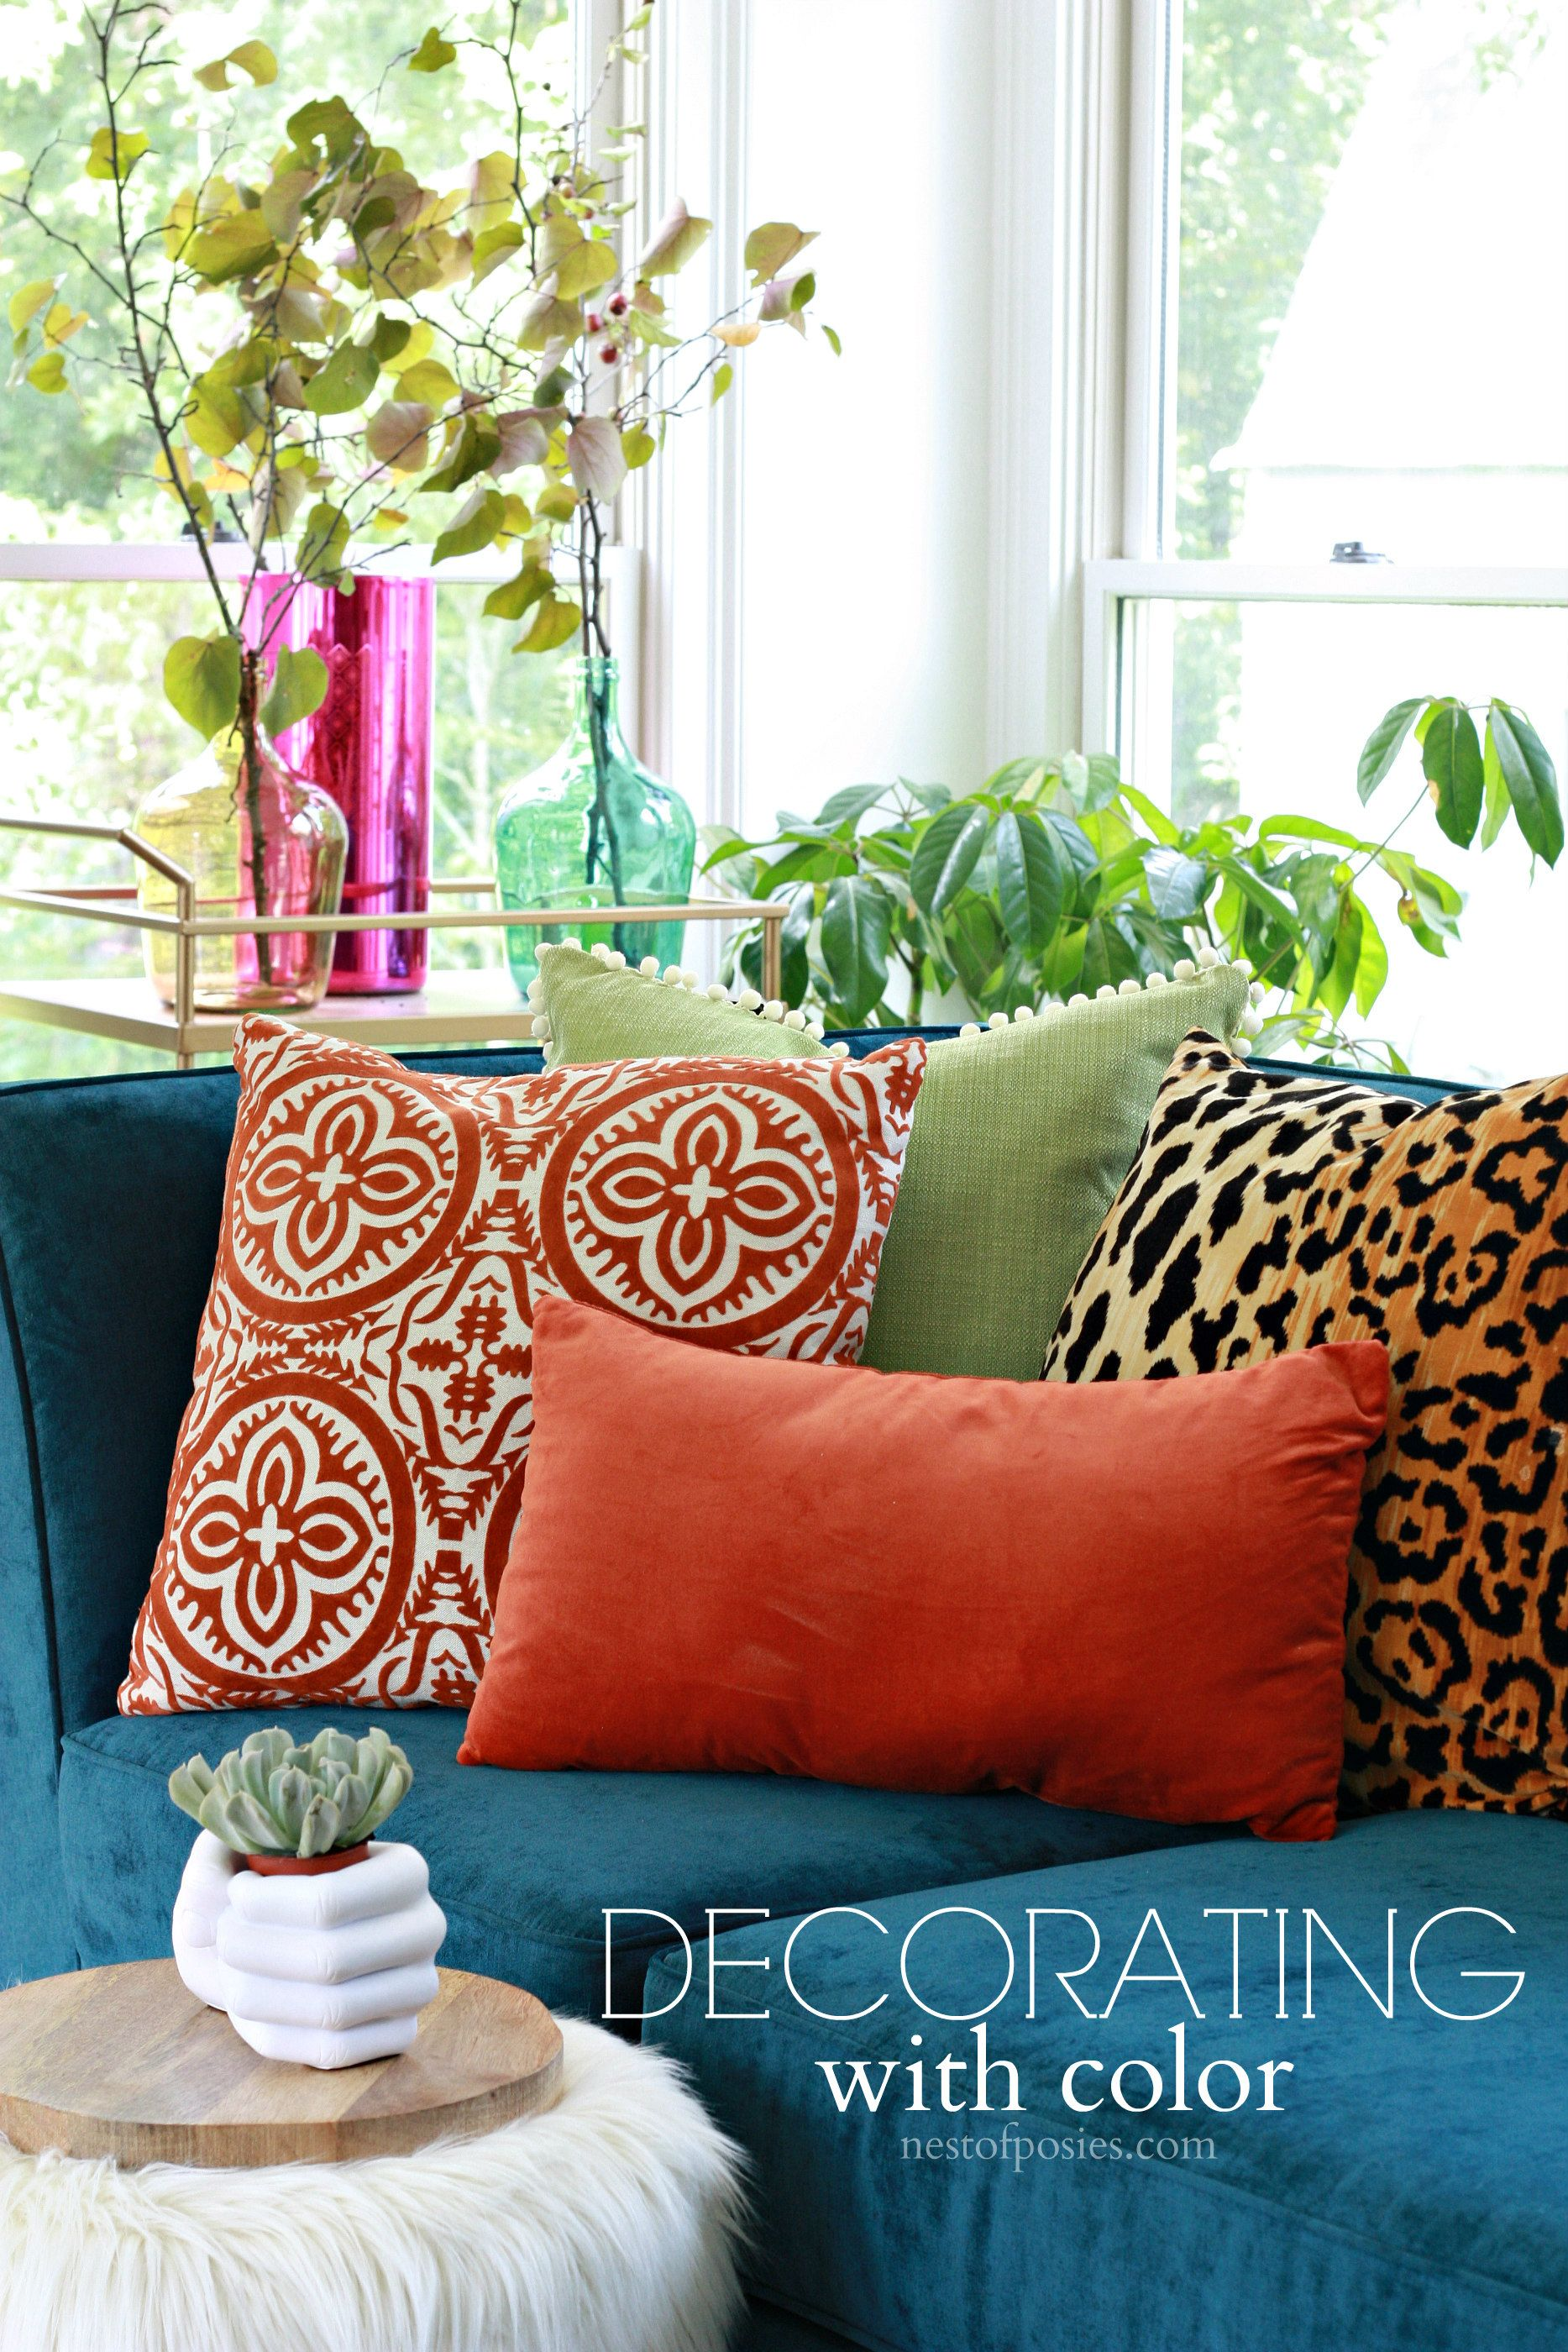 Decorating with color in a home and how to make it cohesive  So the     Decorating with color in a home and how to make it cohesive  So the walls